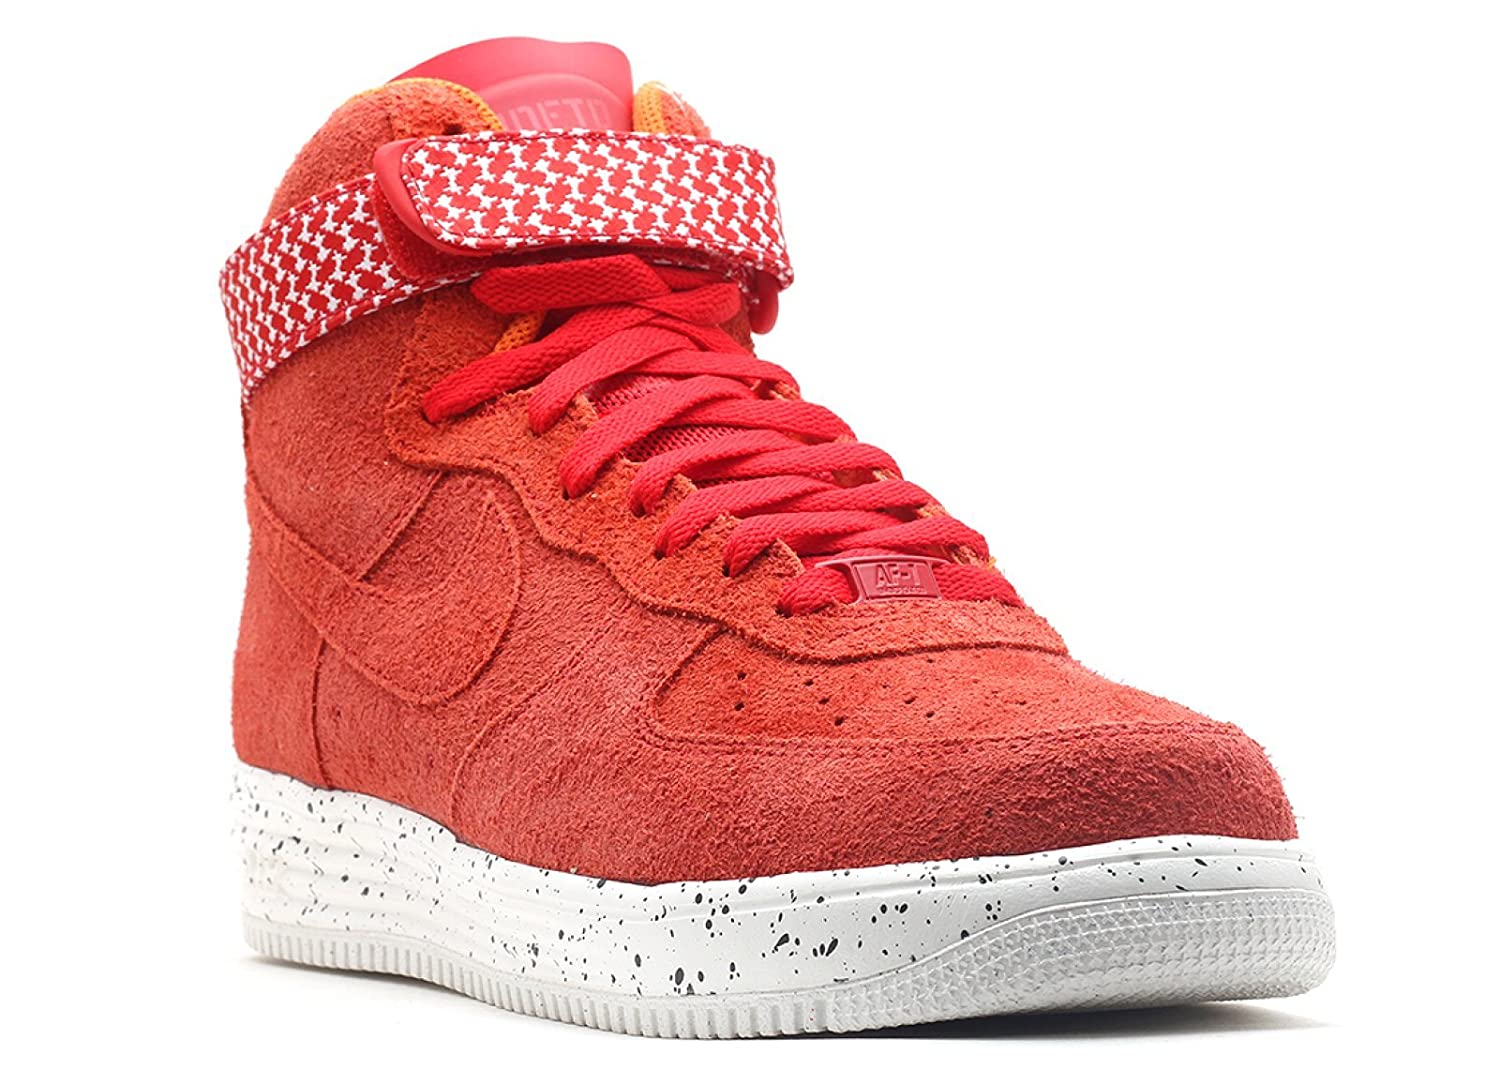 on sale d0b7f a5905 Nike Men s Lunar Force 1 HI Undftd SP, University RED University RED, 12 M  US  Buy Online at Low Prices in India - Amazon.in